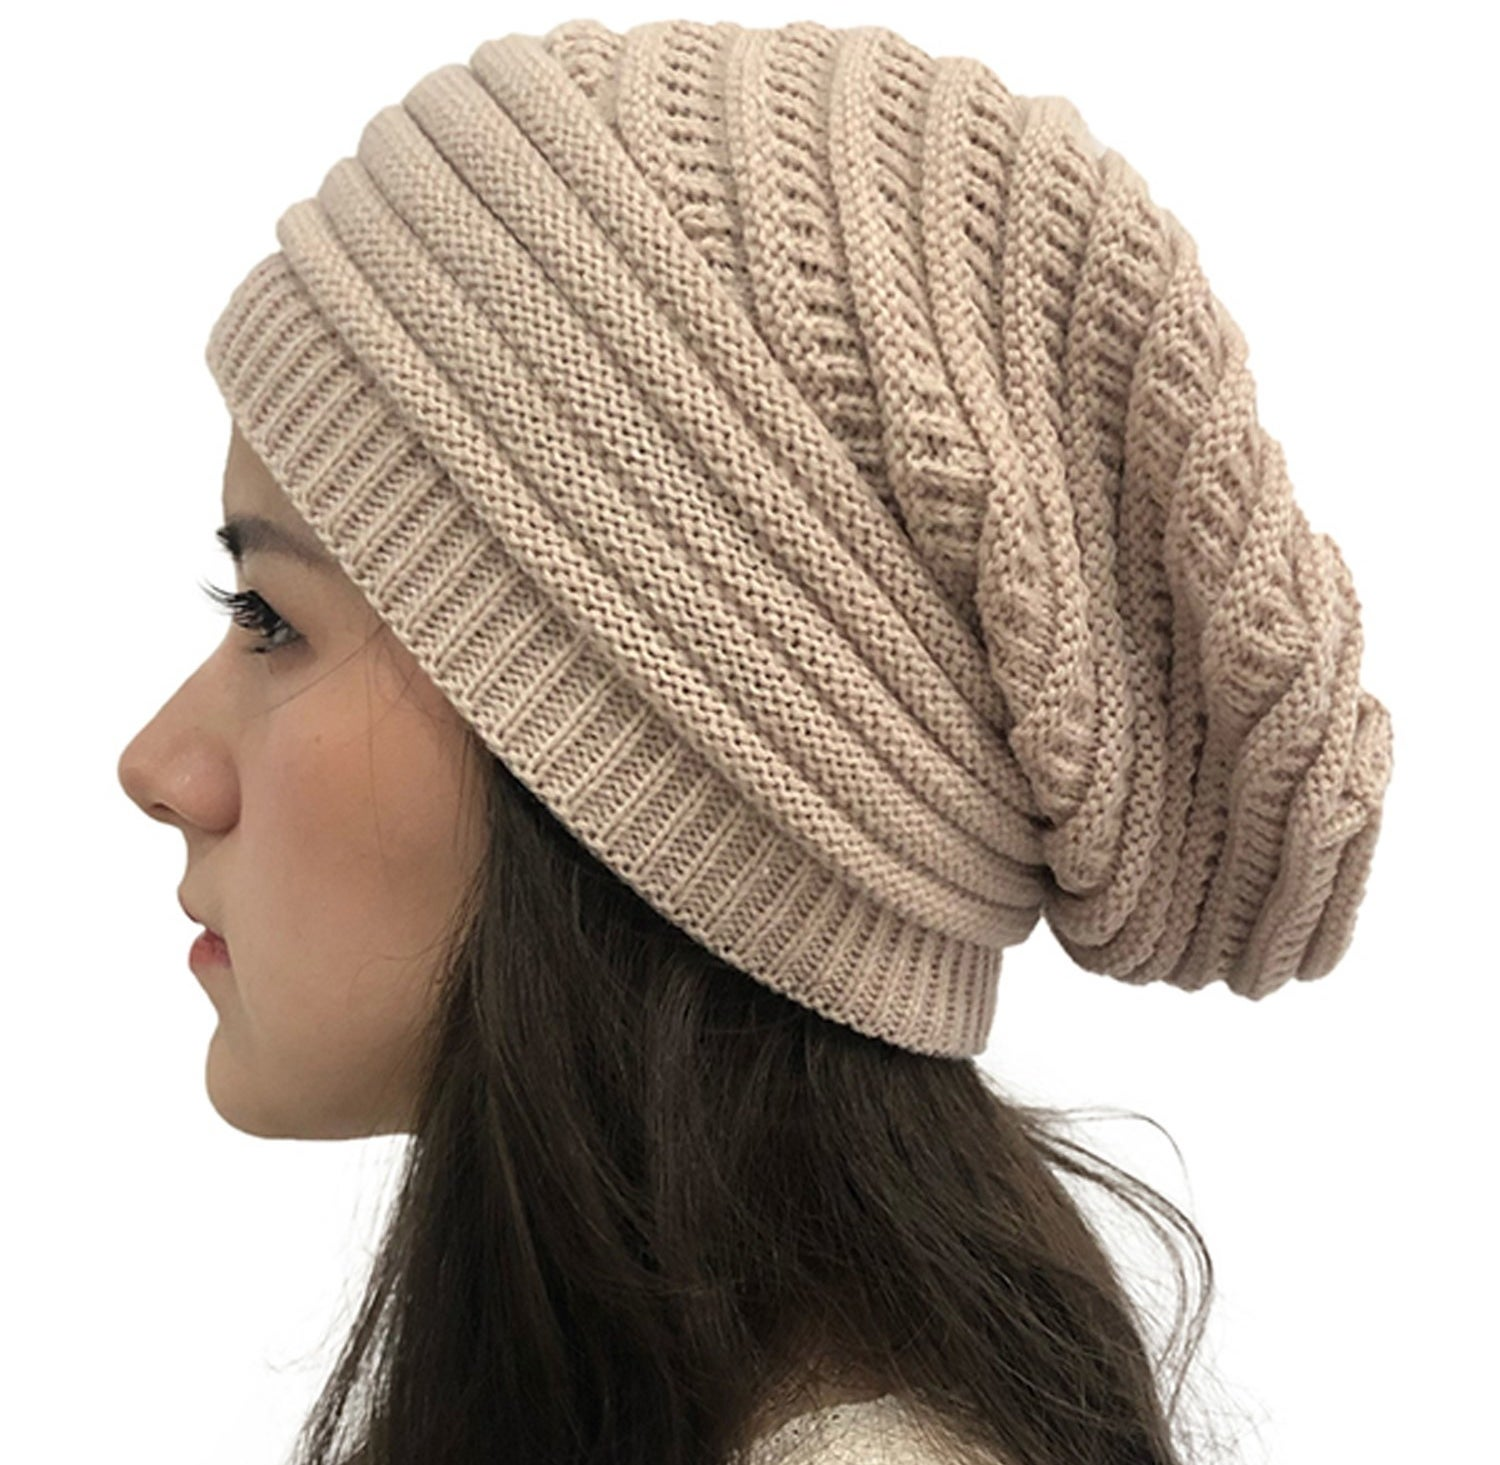 A close up of the beanie worn by a model